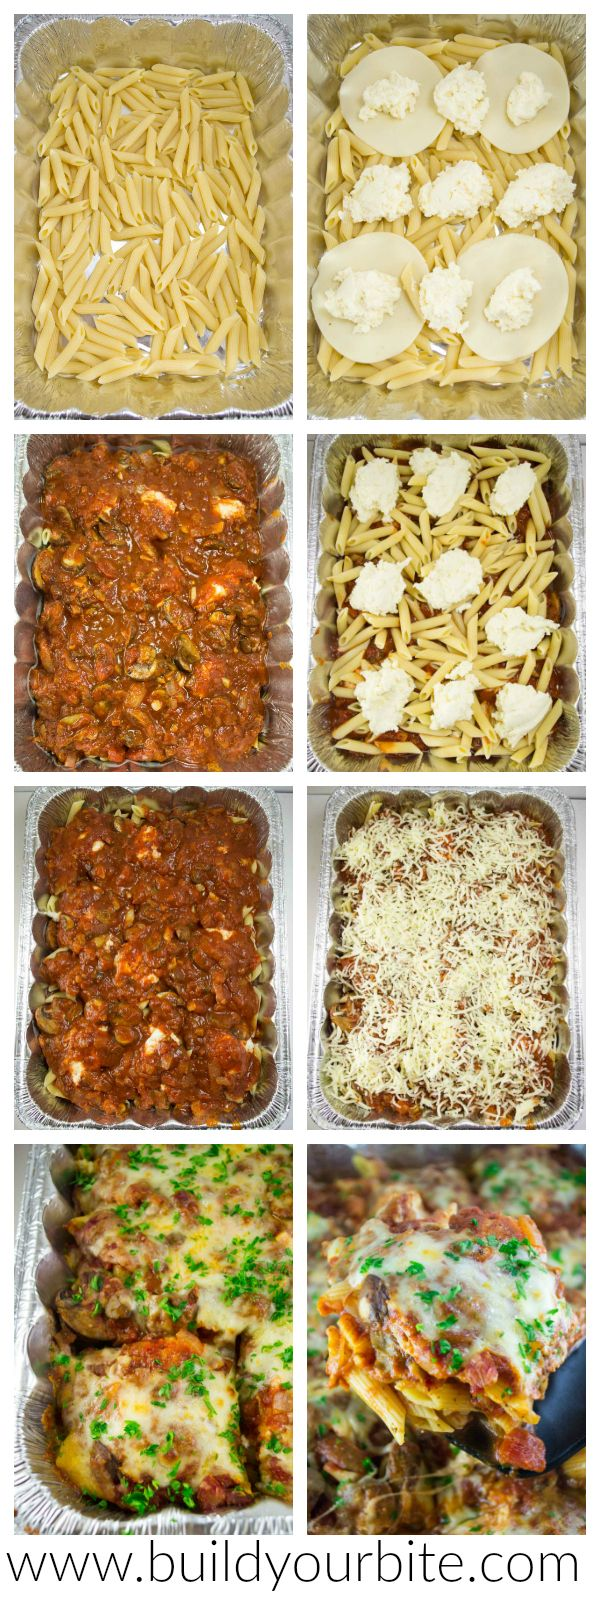 Freezer Friendly Oven Baked Ziti – an easy and delicious make ahead meal that can be frozen for later or cooked right away!